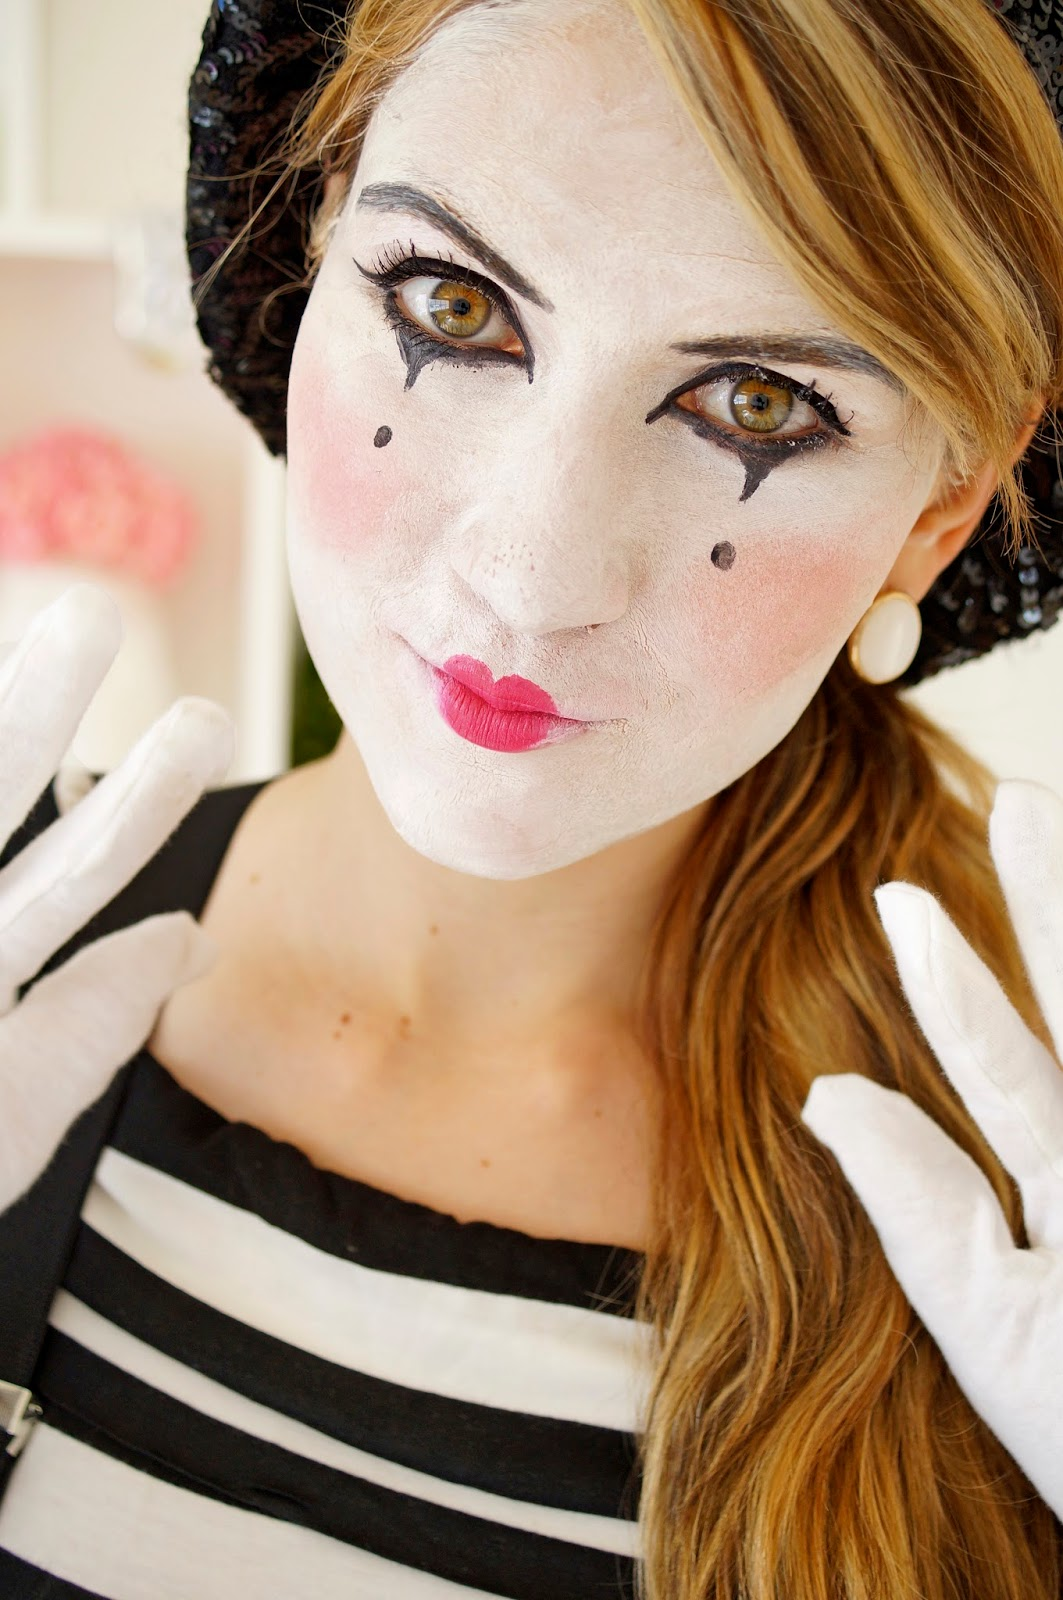 Easy Homemade Mime Costume Tutorial for Halloween